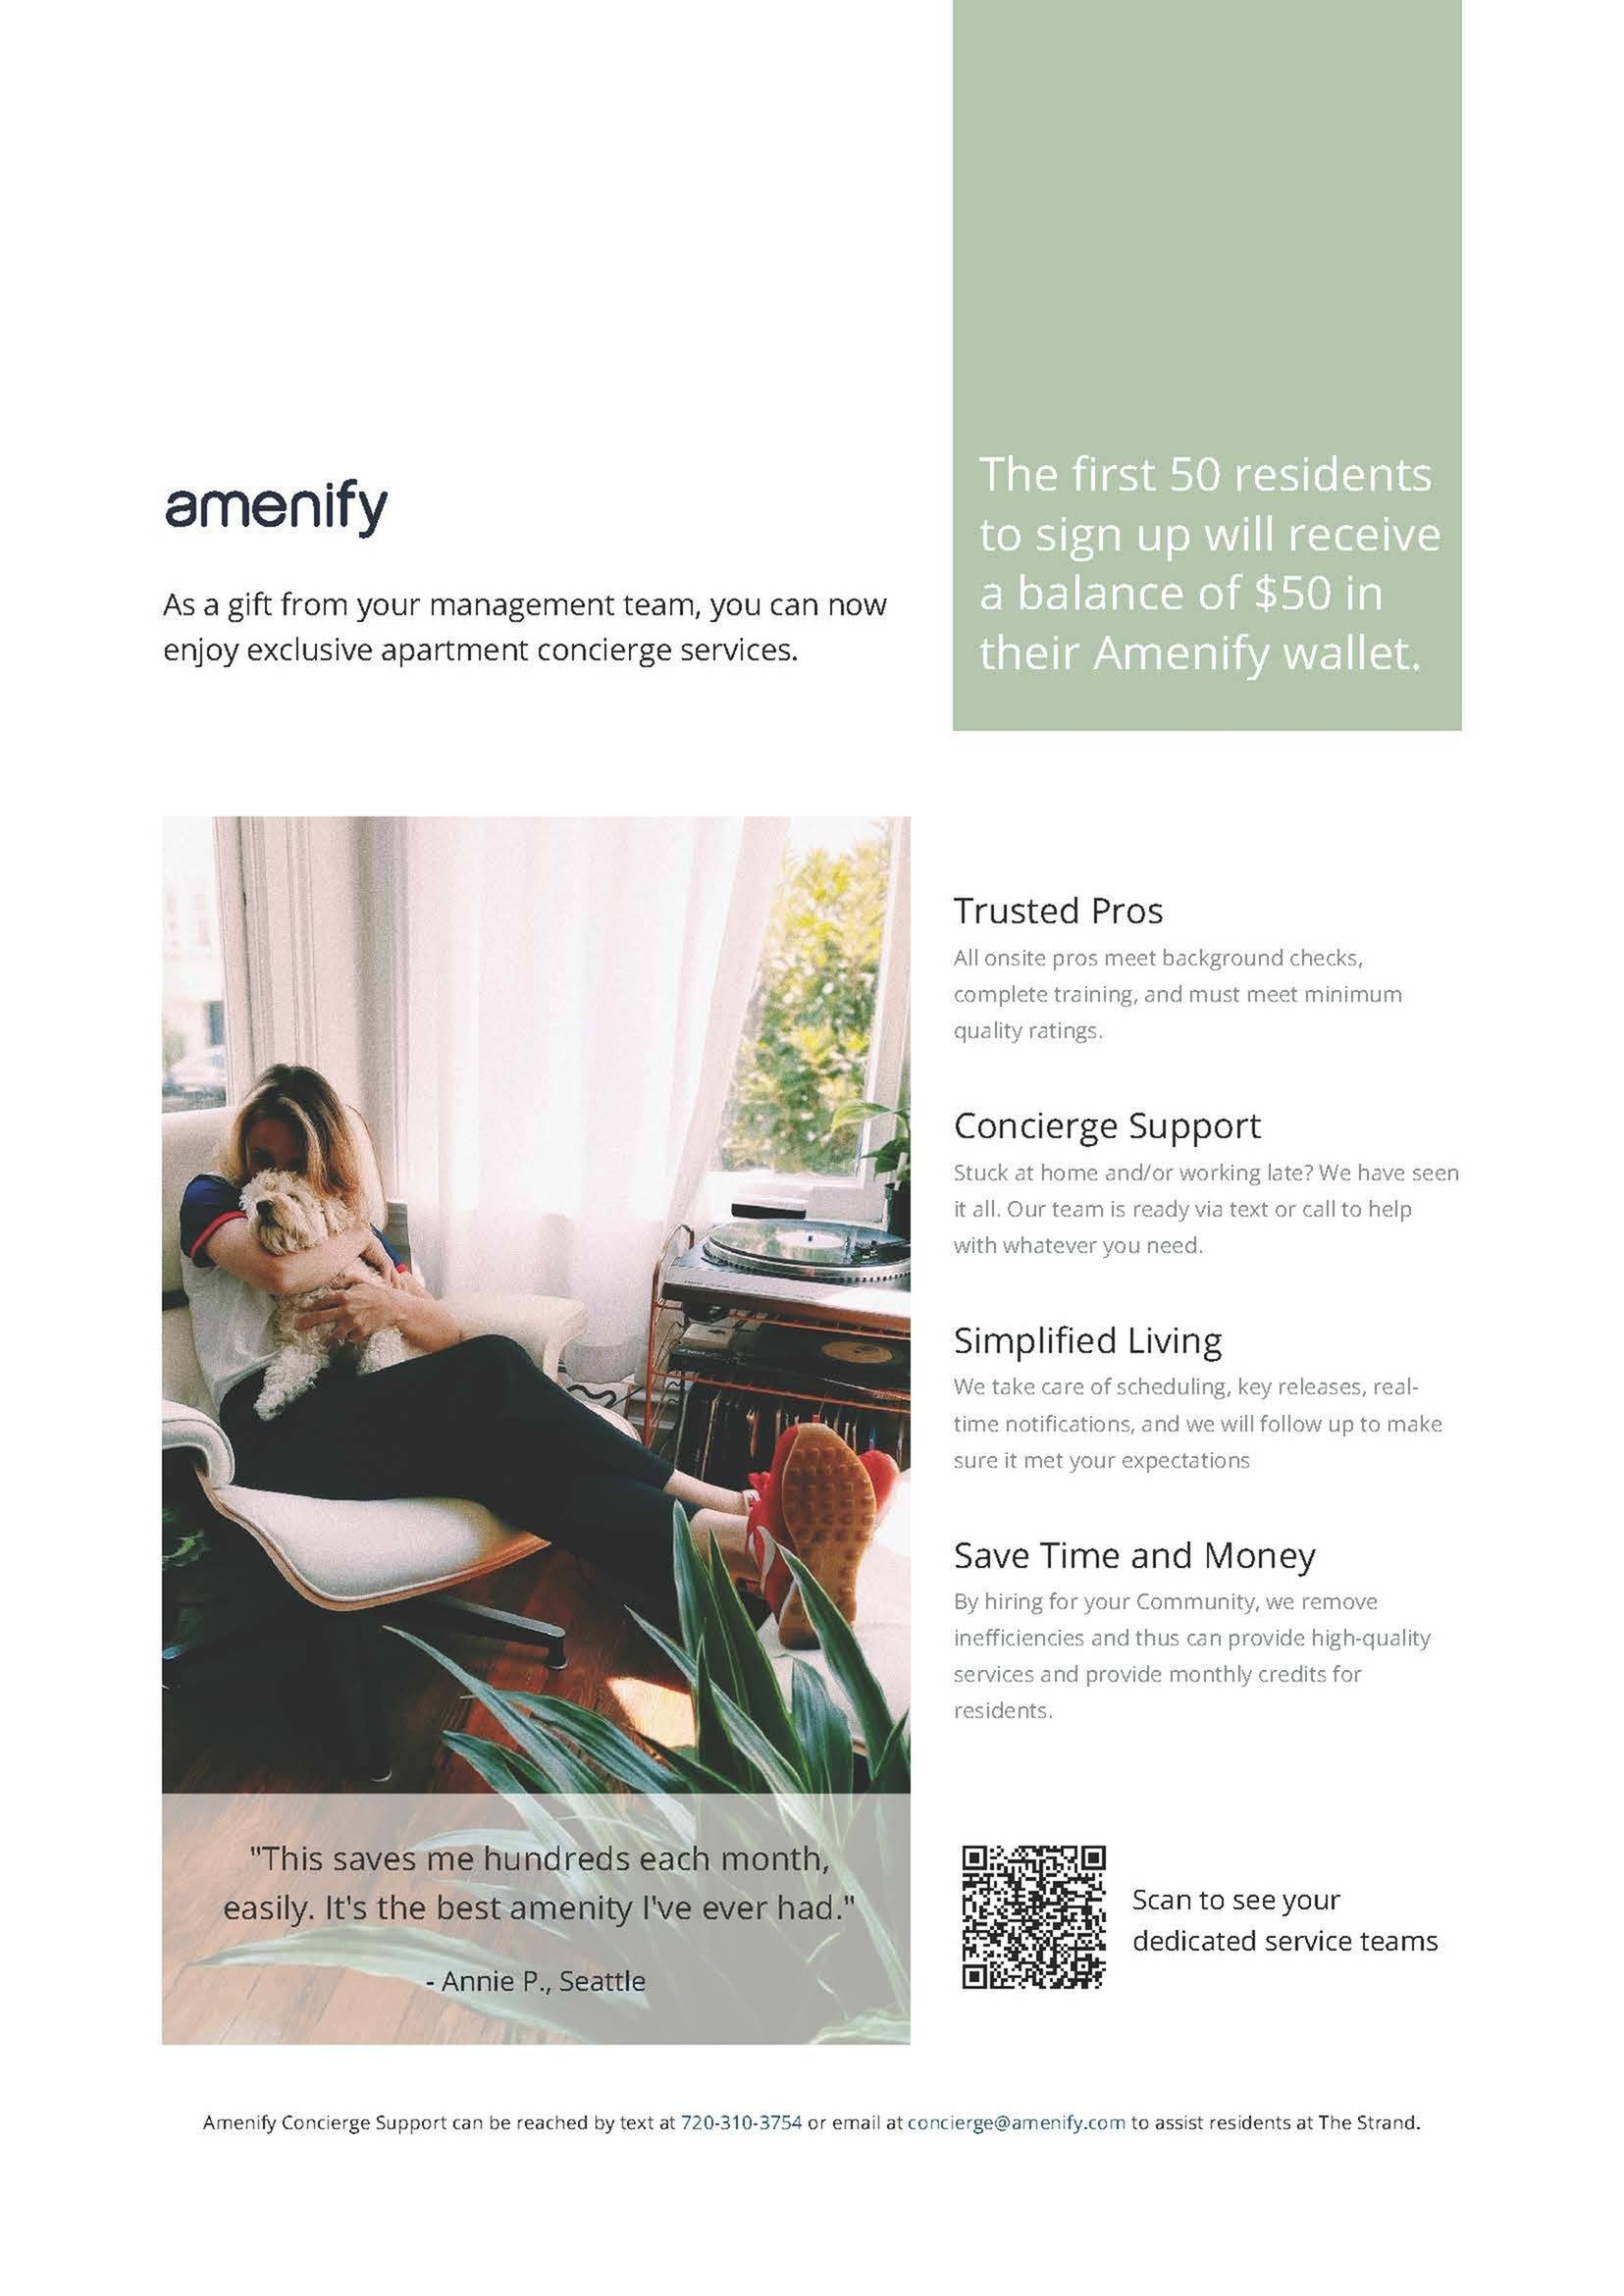 Lifestyle Services Provided by Amenify